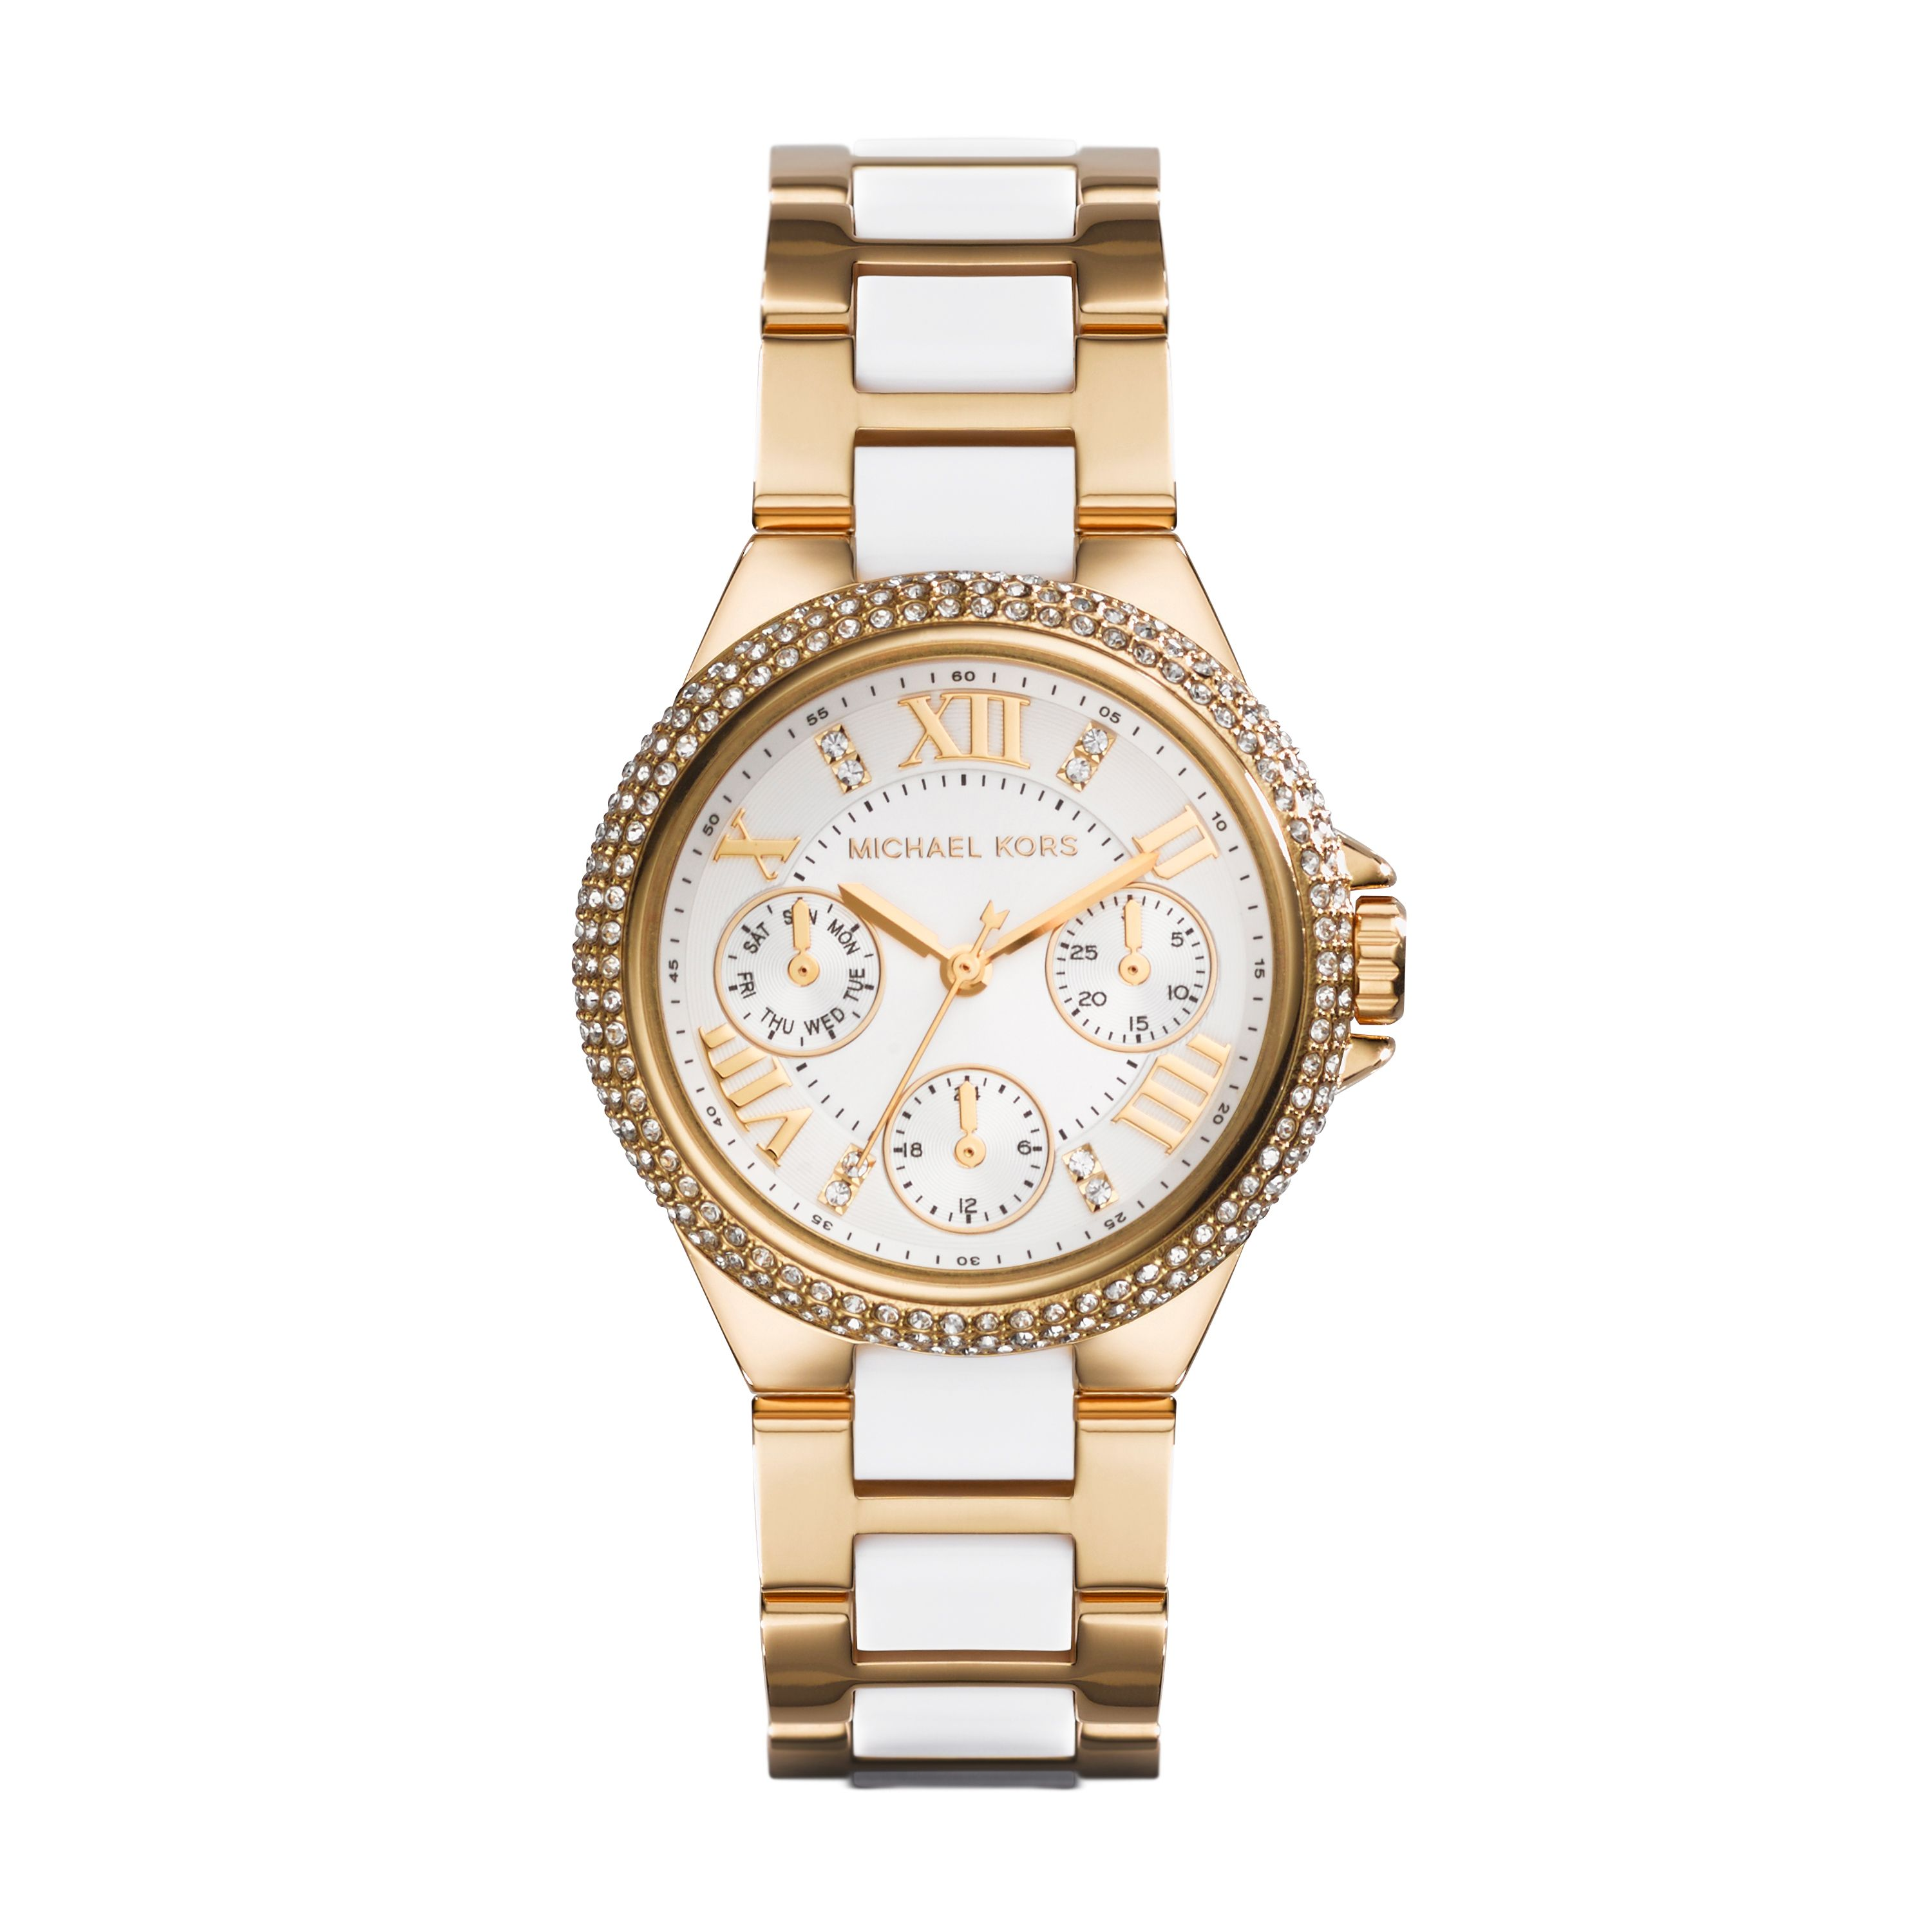 Mk5945 camille ladies chronograph bracelet watch